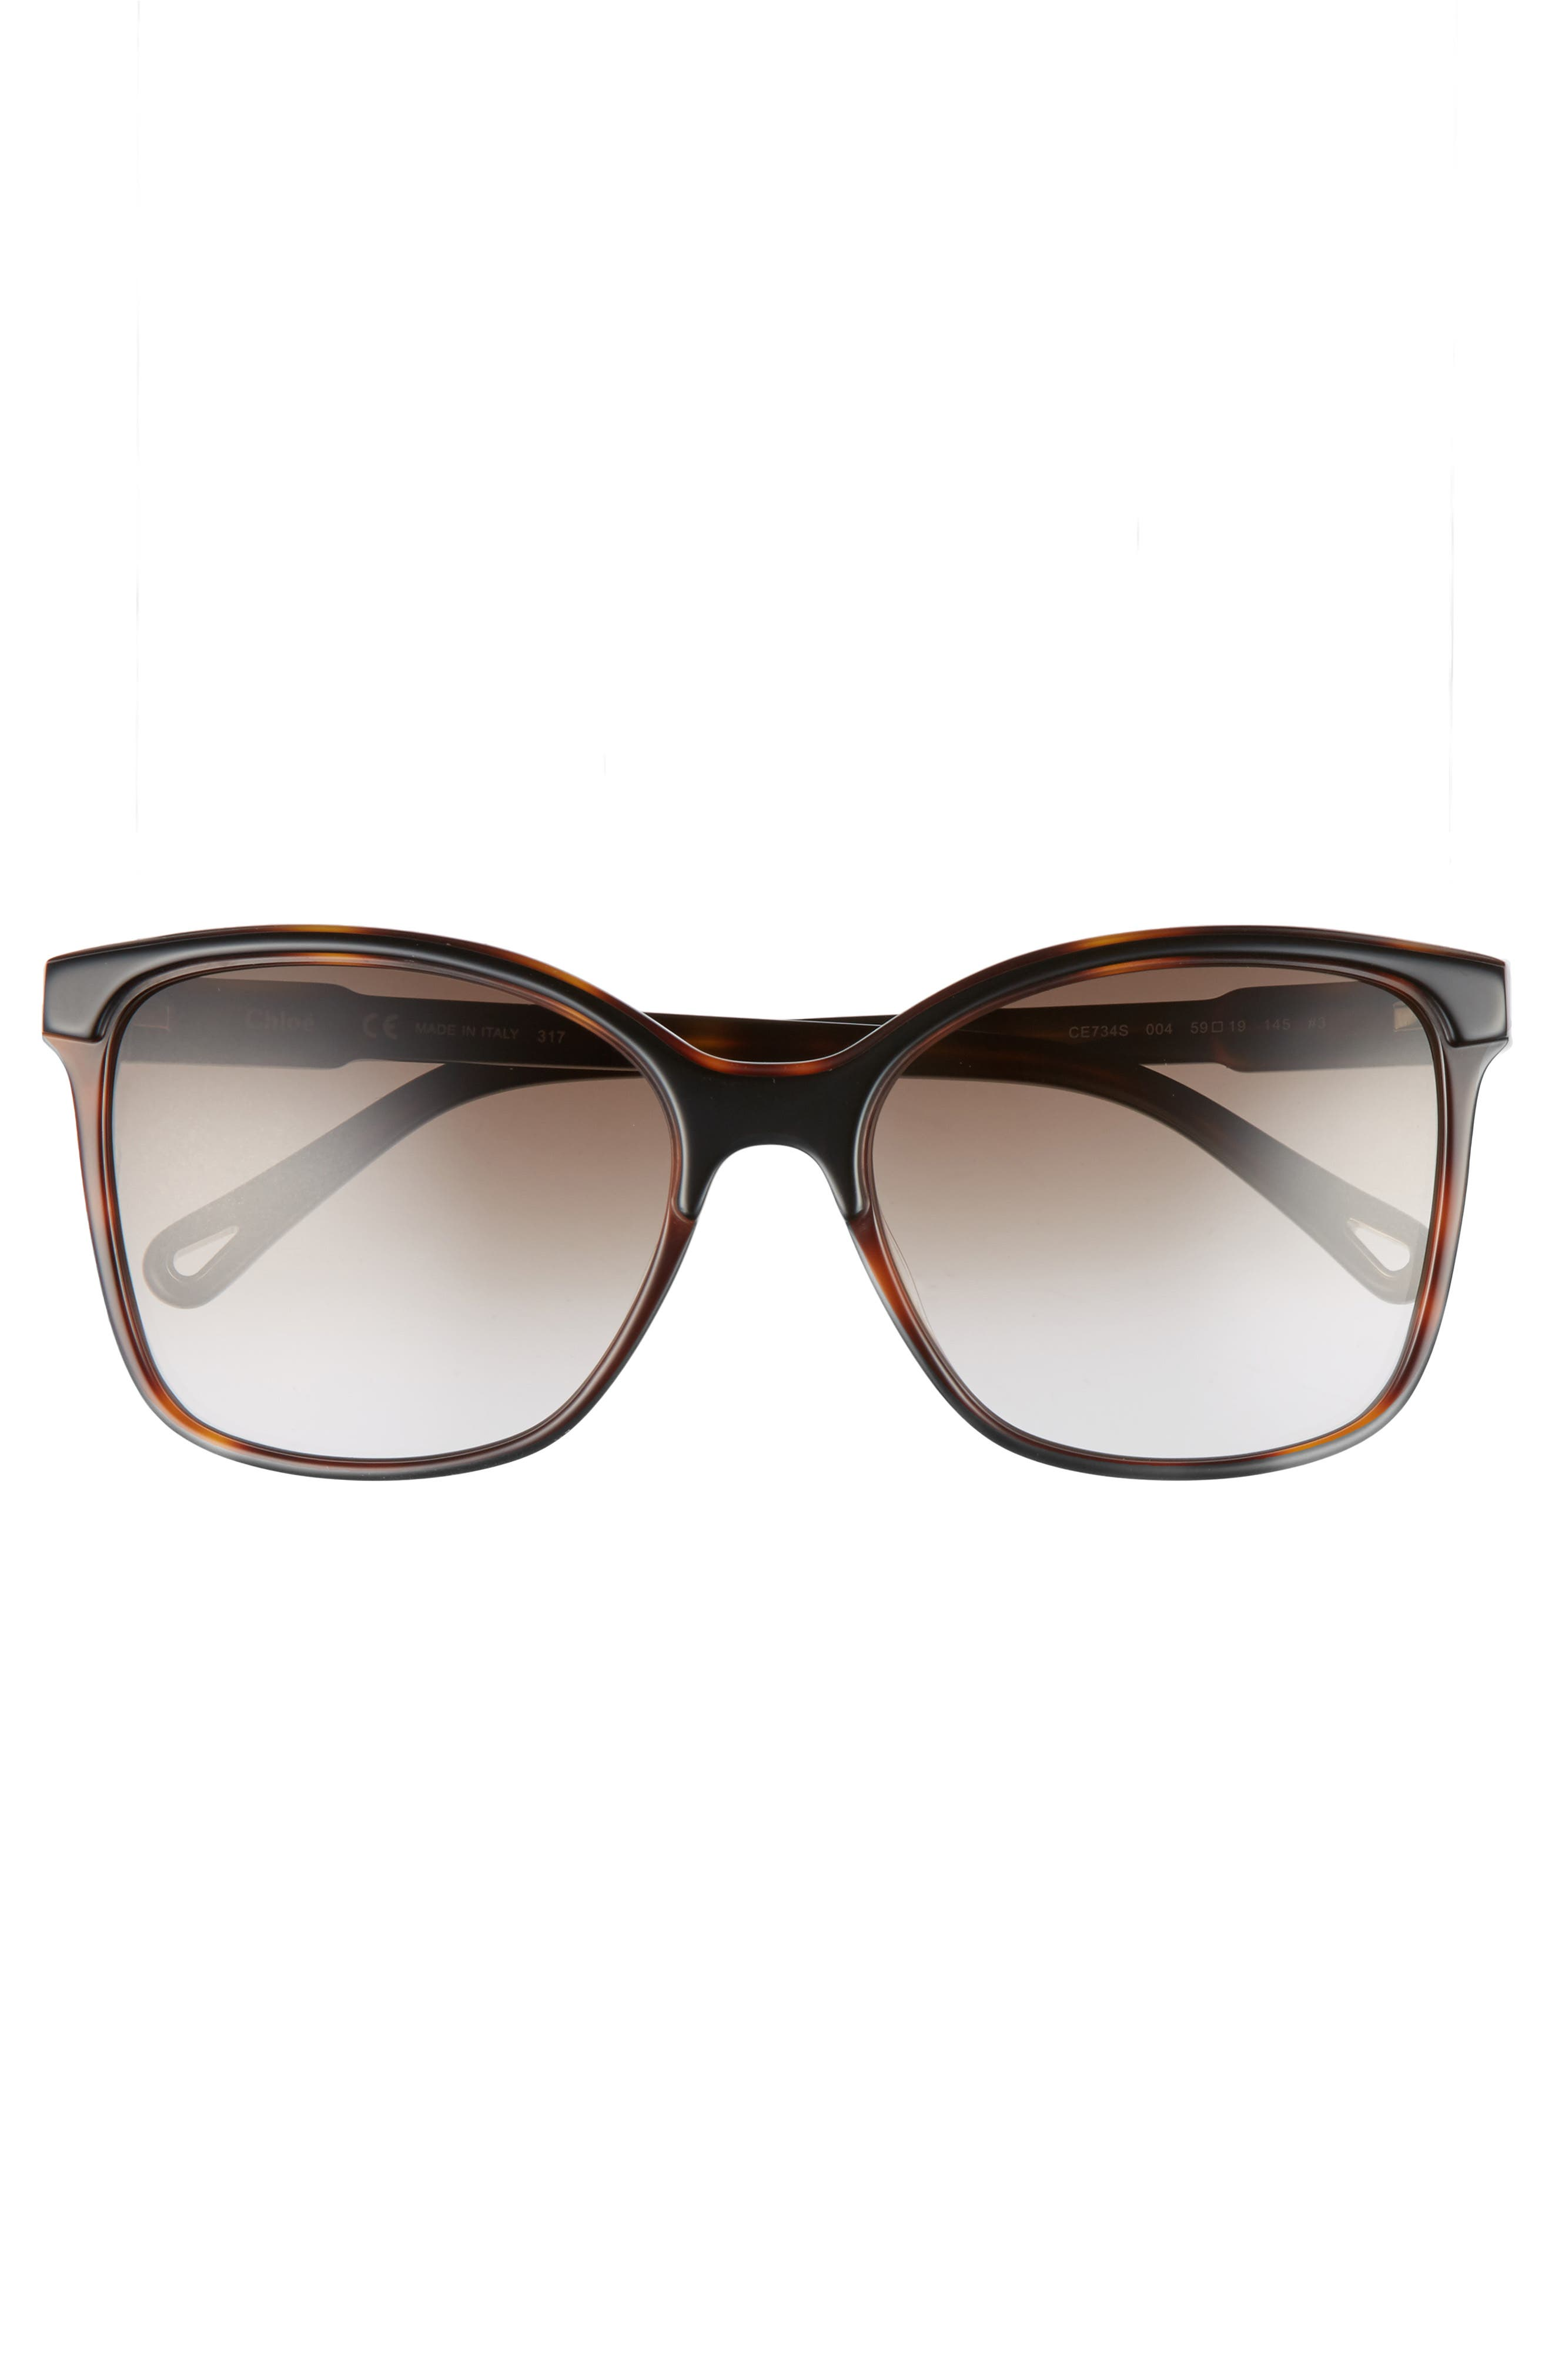 59mm Brow Bar Sunglasses,                             Alternate thumbnail 3, color,                             004